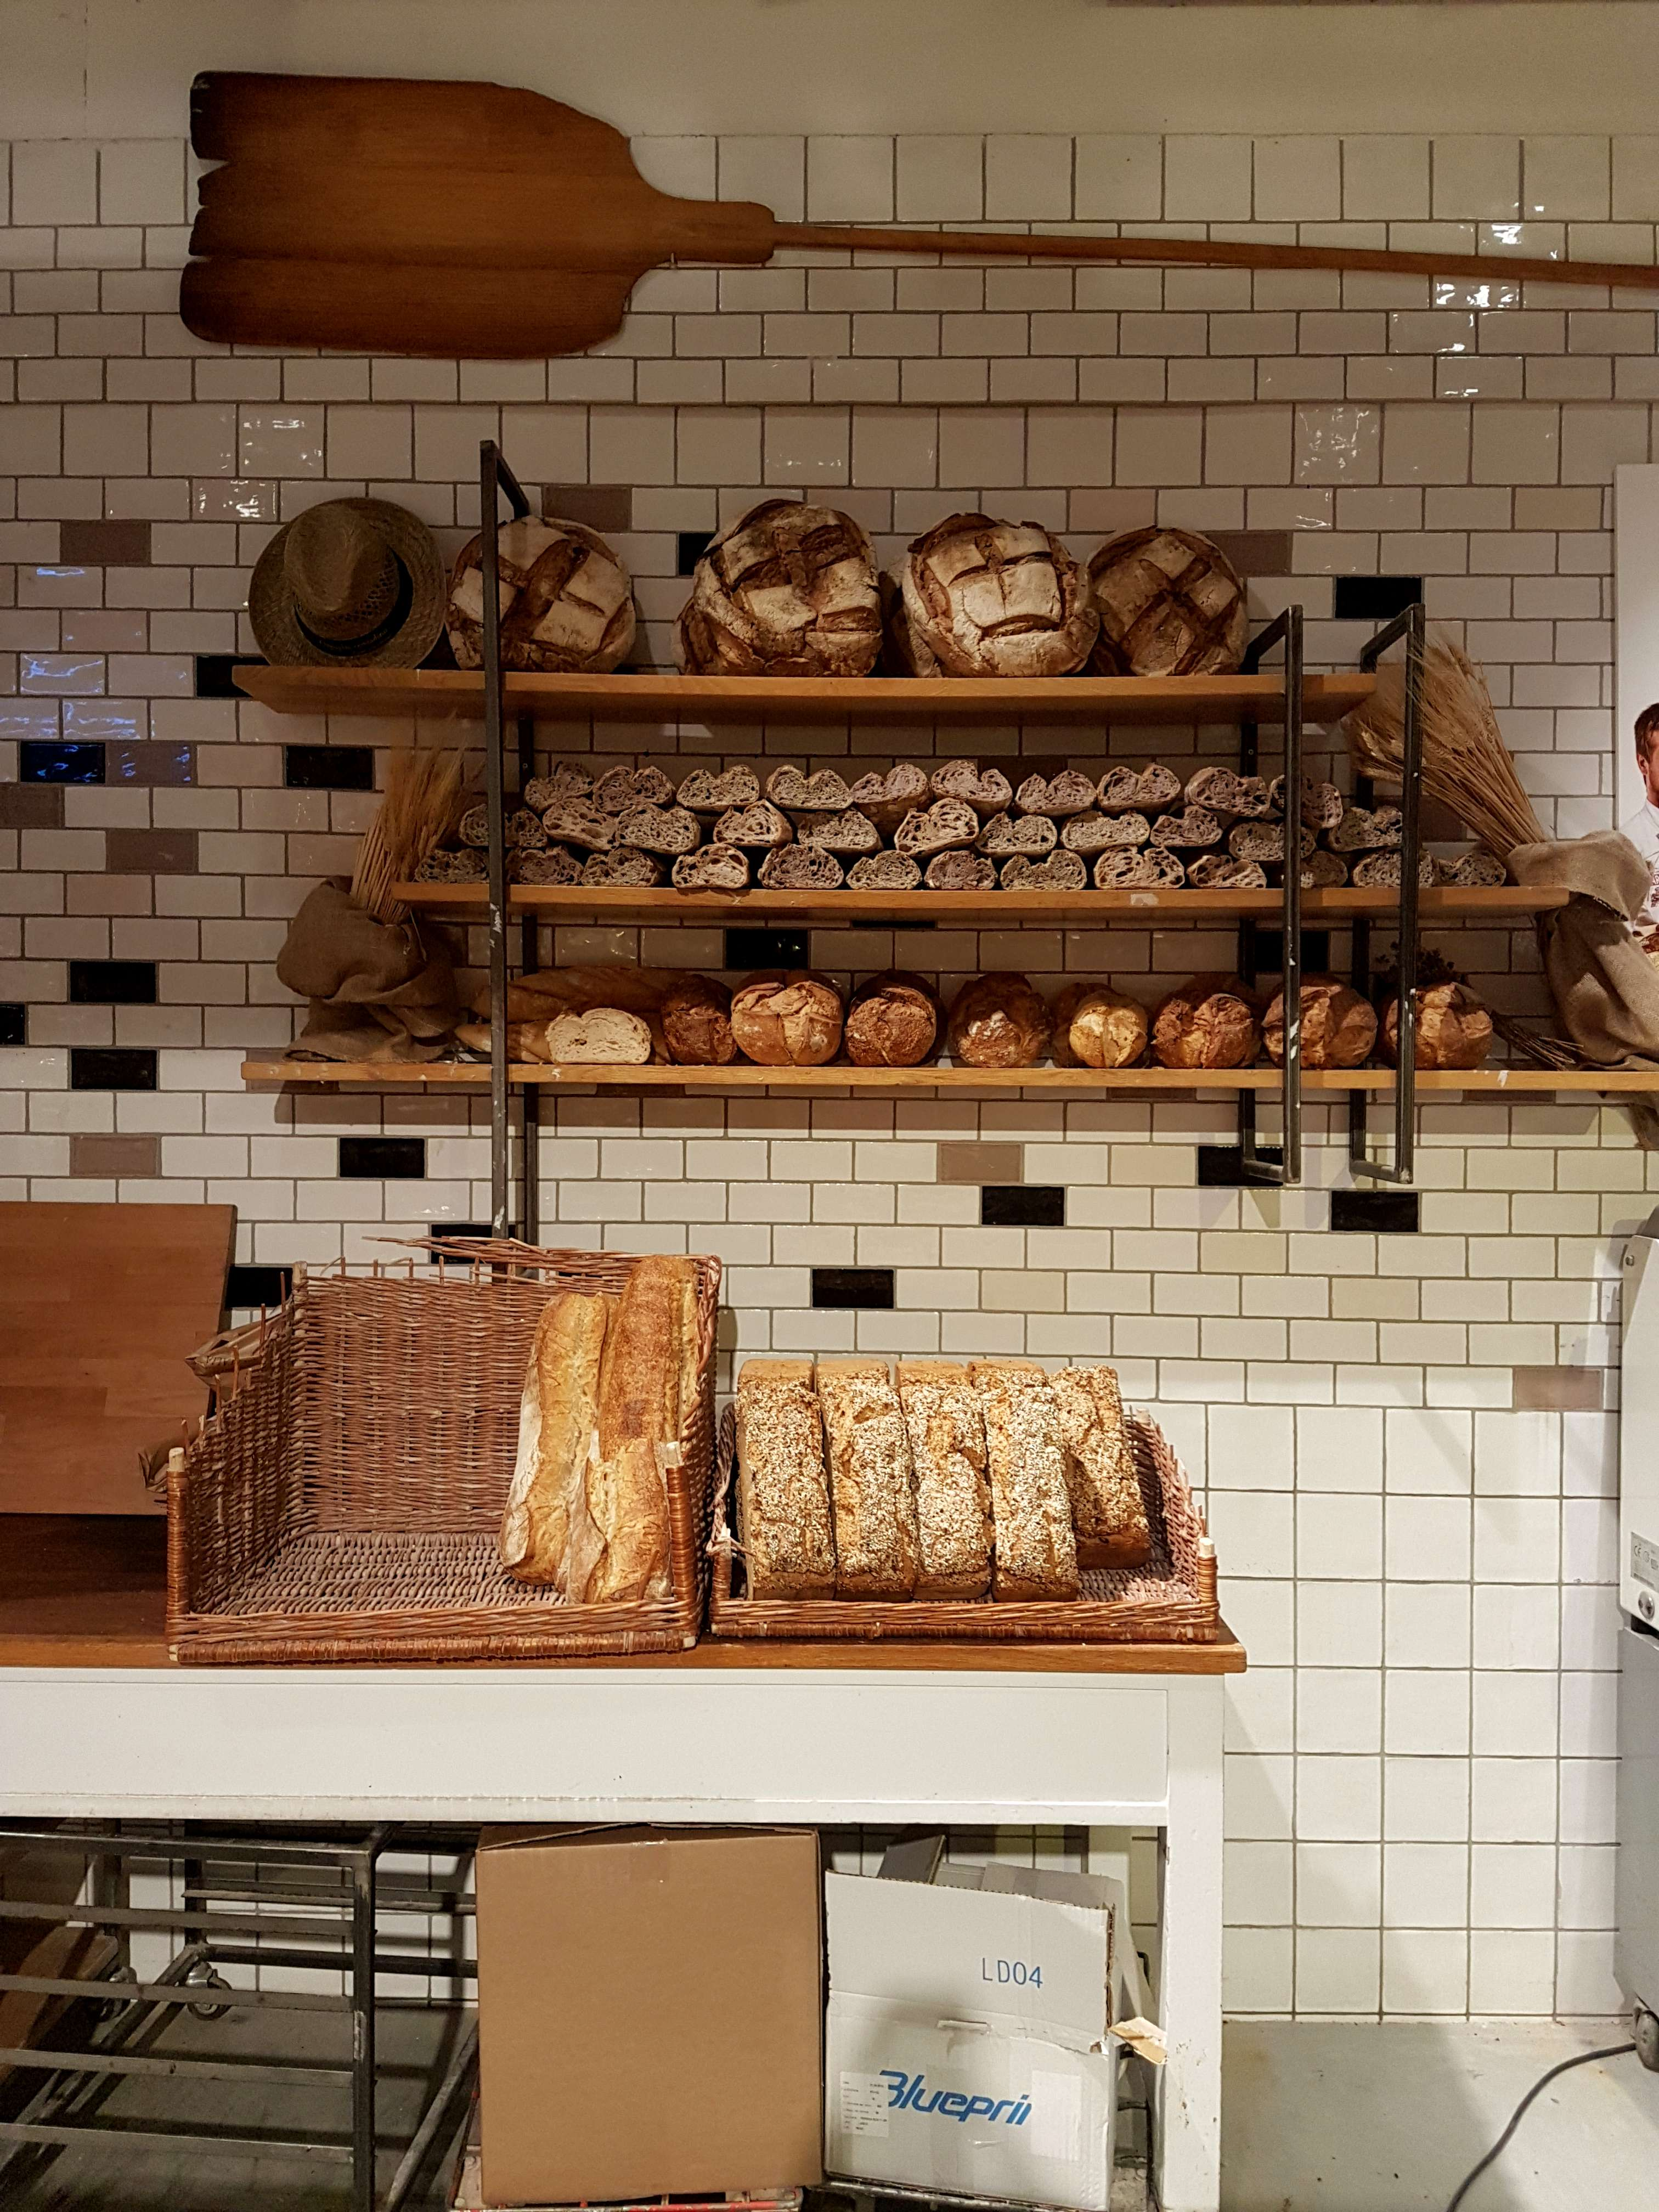 Best things to eat at Eataly Rome include smart flagship restaurant Terra plus several casual dining options. All new Eataly menu and Ikea pop-up store.